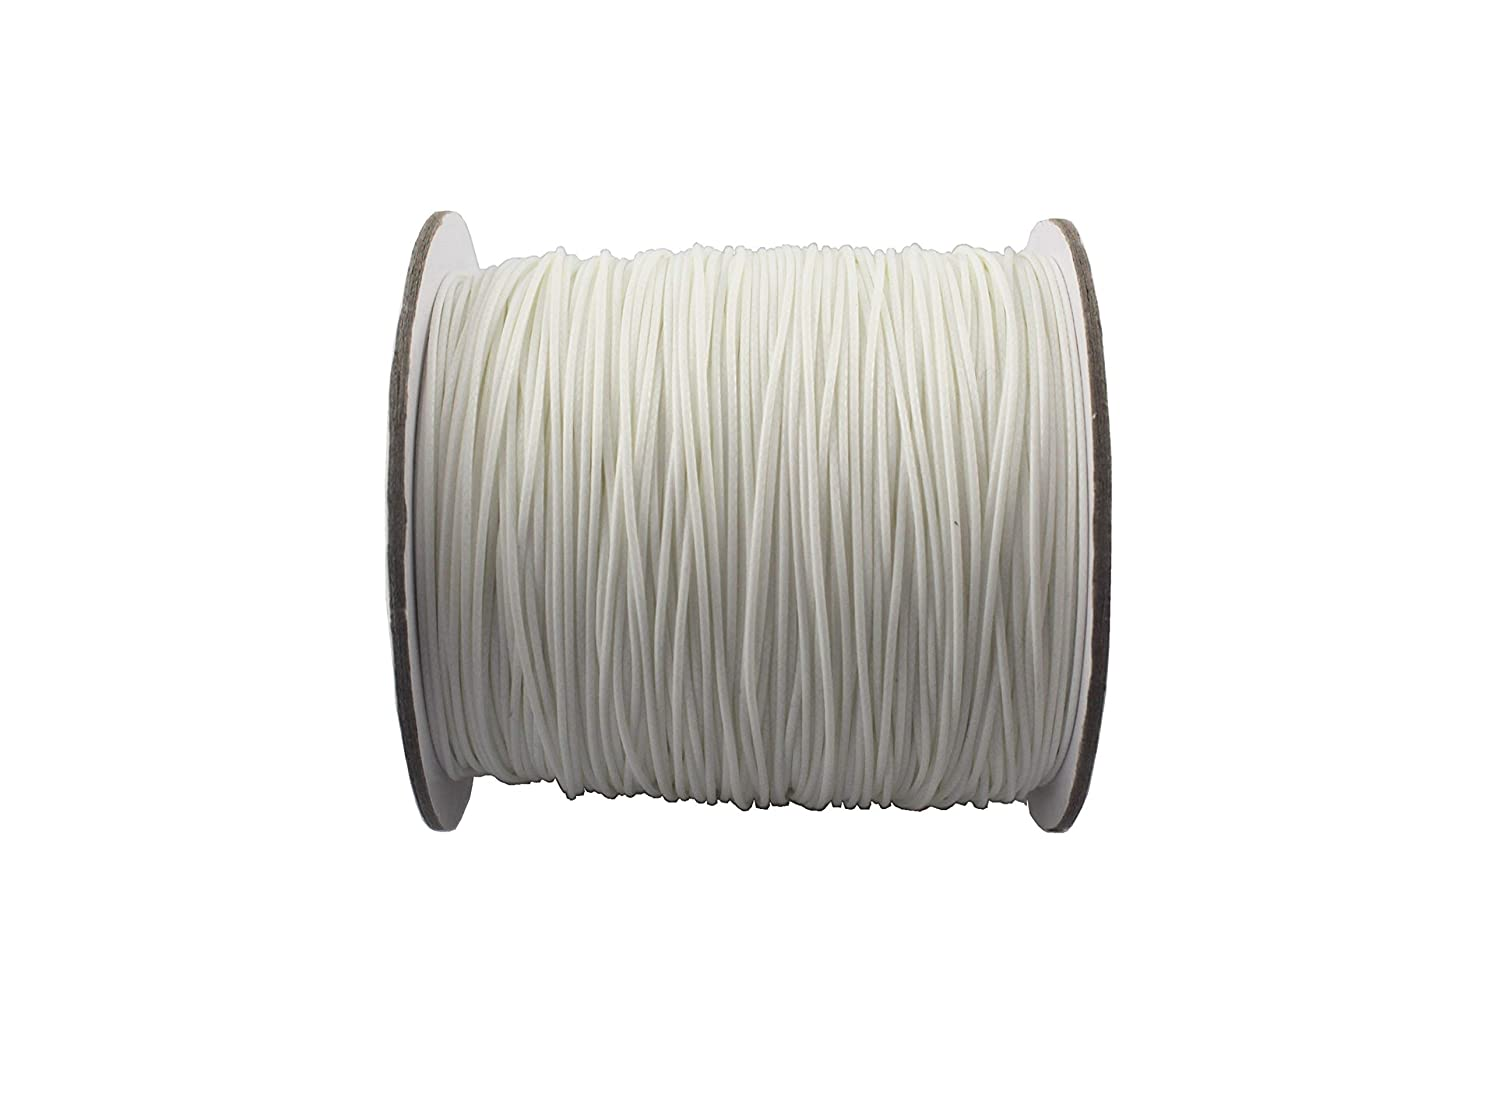 QIANHAILIZZ 150 Yards 0.5 mm Waxed Jewelry Making Cord Waxed Beading String Craft DIY Thread LXX120601805 (White)